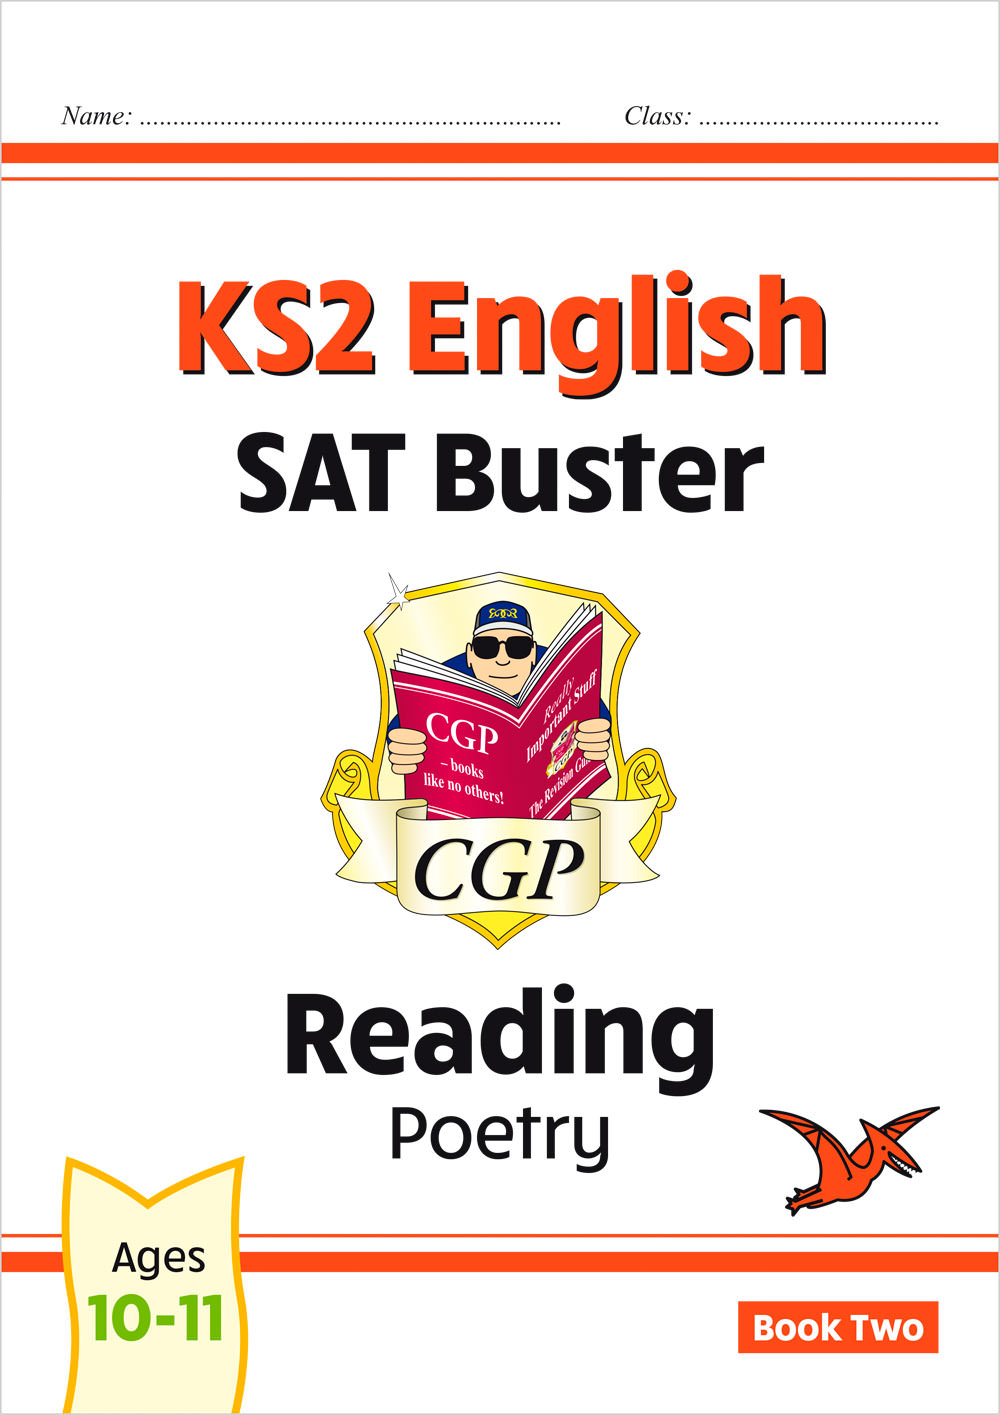 E6FRP222 - New KS2 English Reading SAT Buster: Poetry - Book 2 (for the 2021 tests)